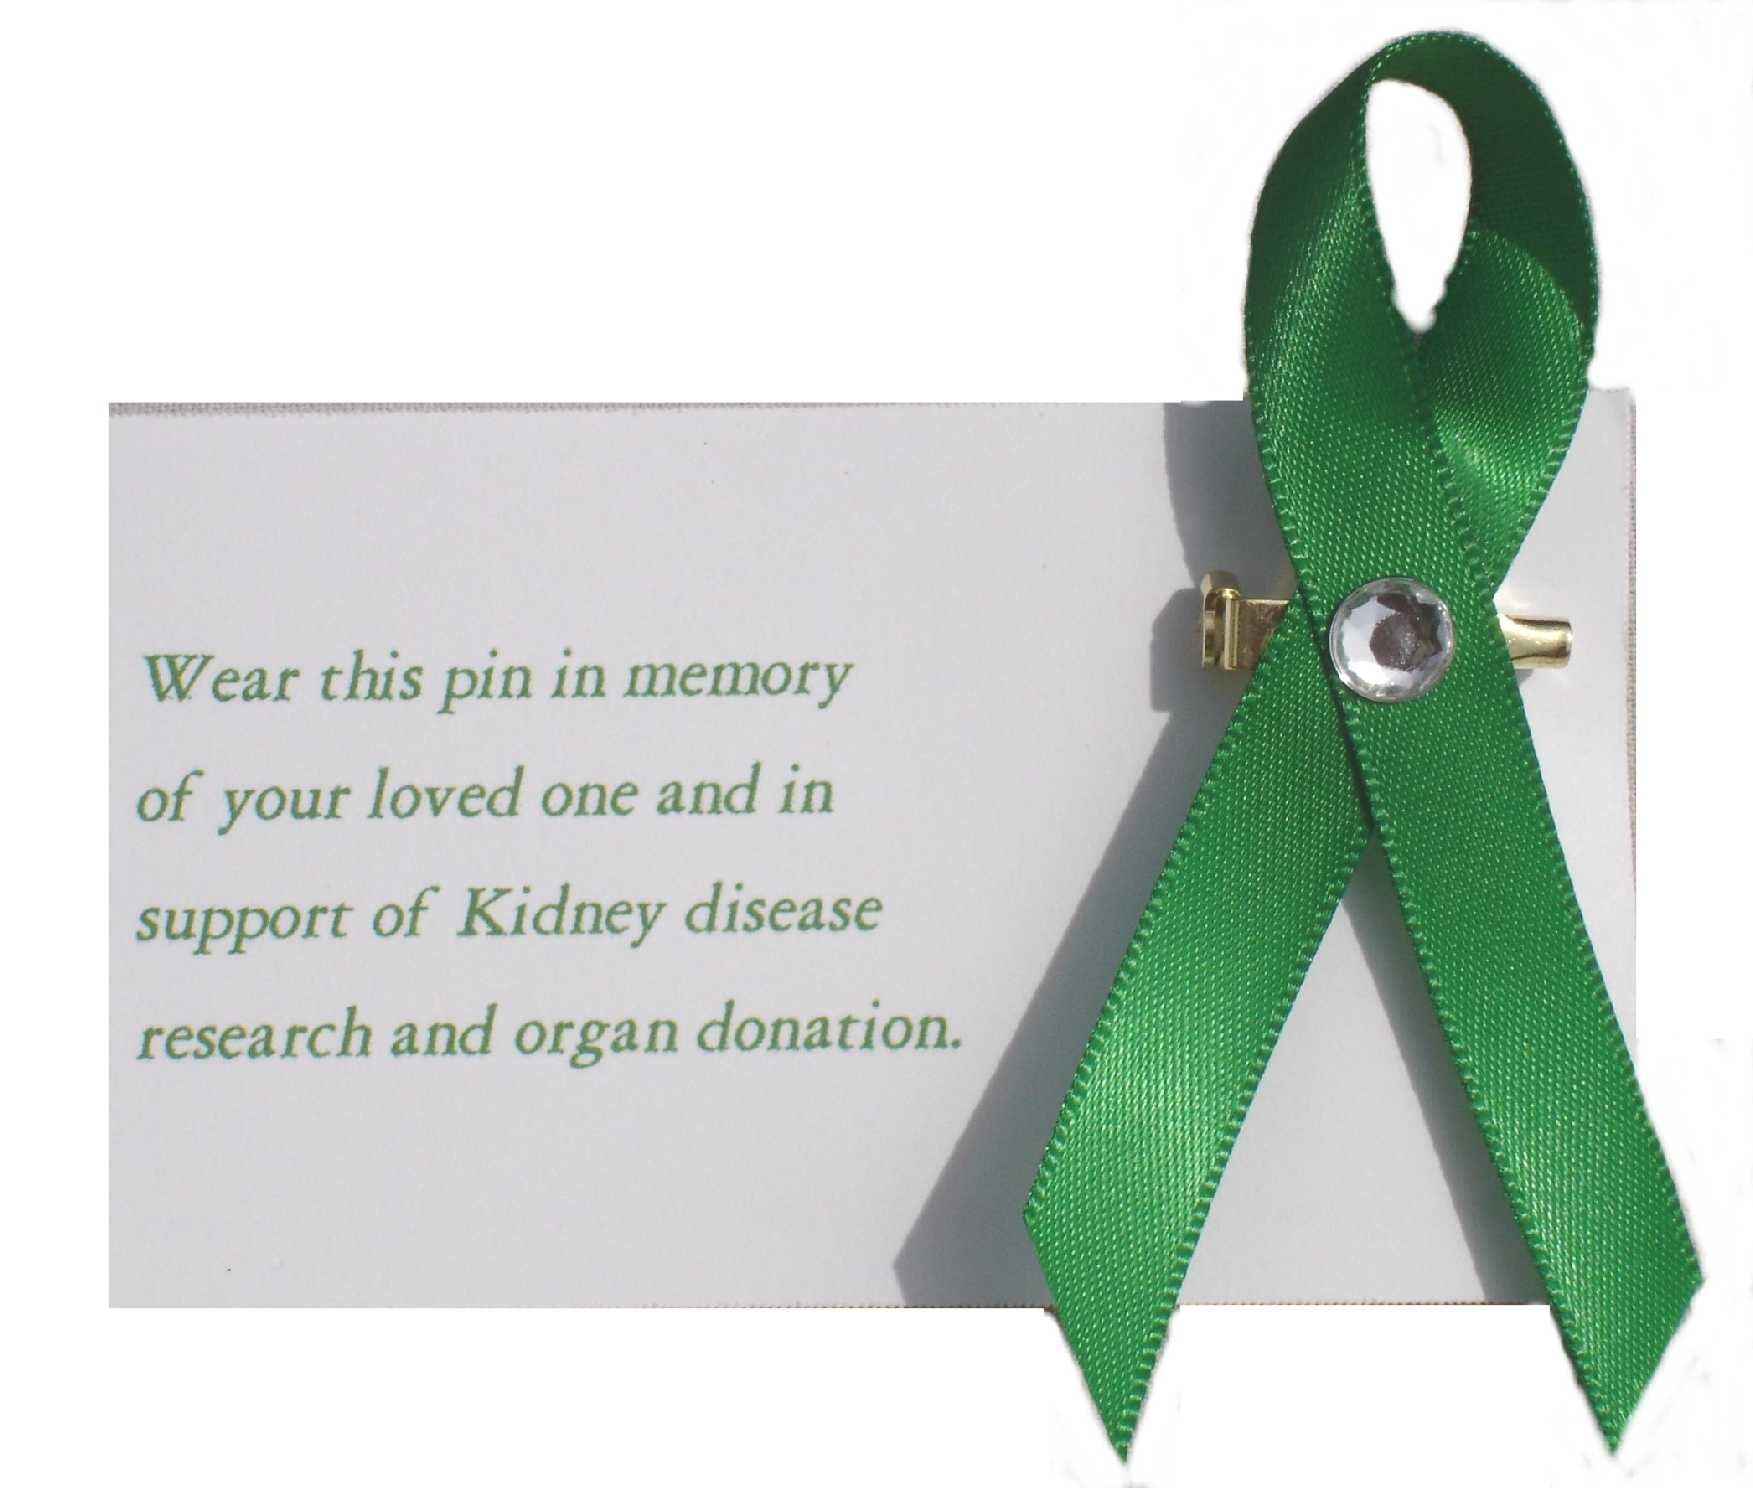 kidney-disease-research-green-pinb.jpg